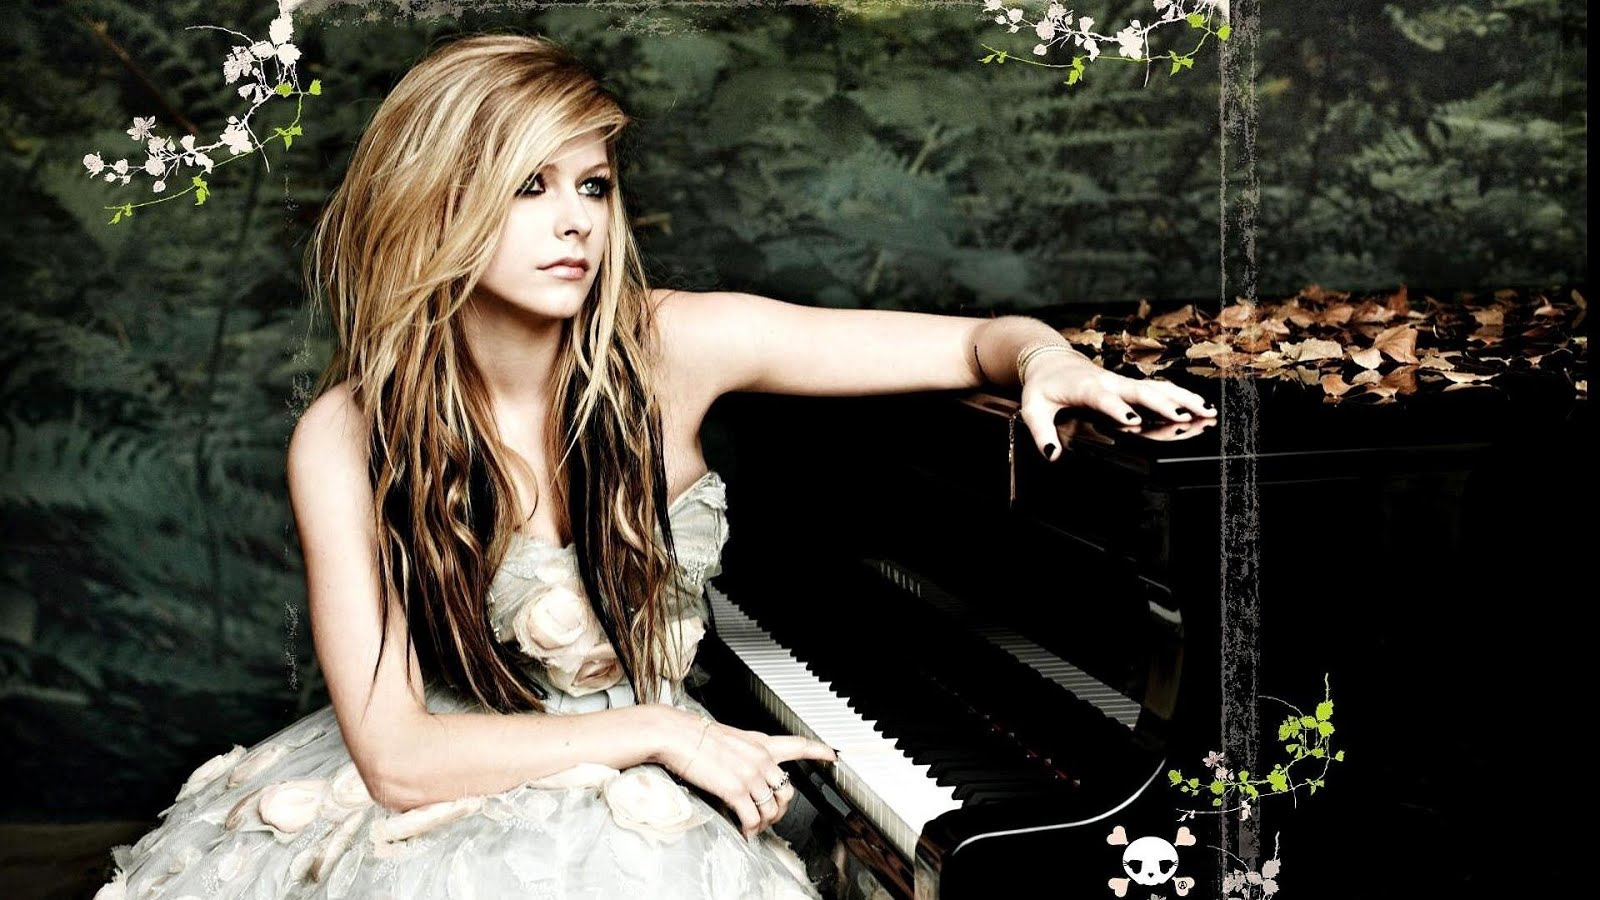 One of My Favorite Singers - Avril Lavigne